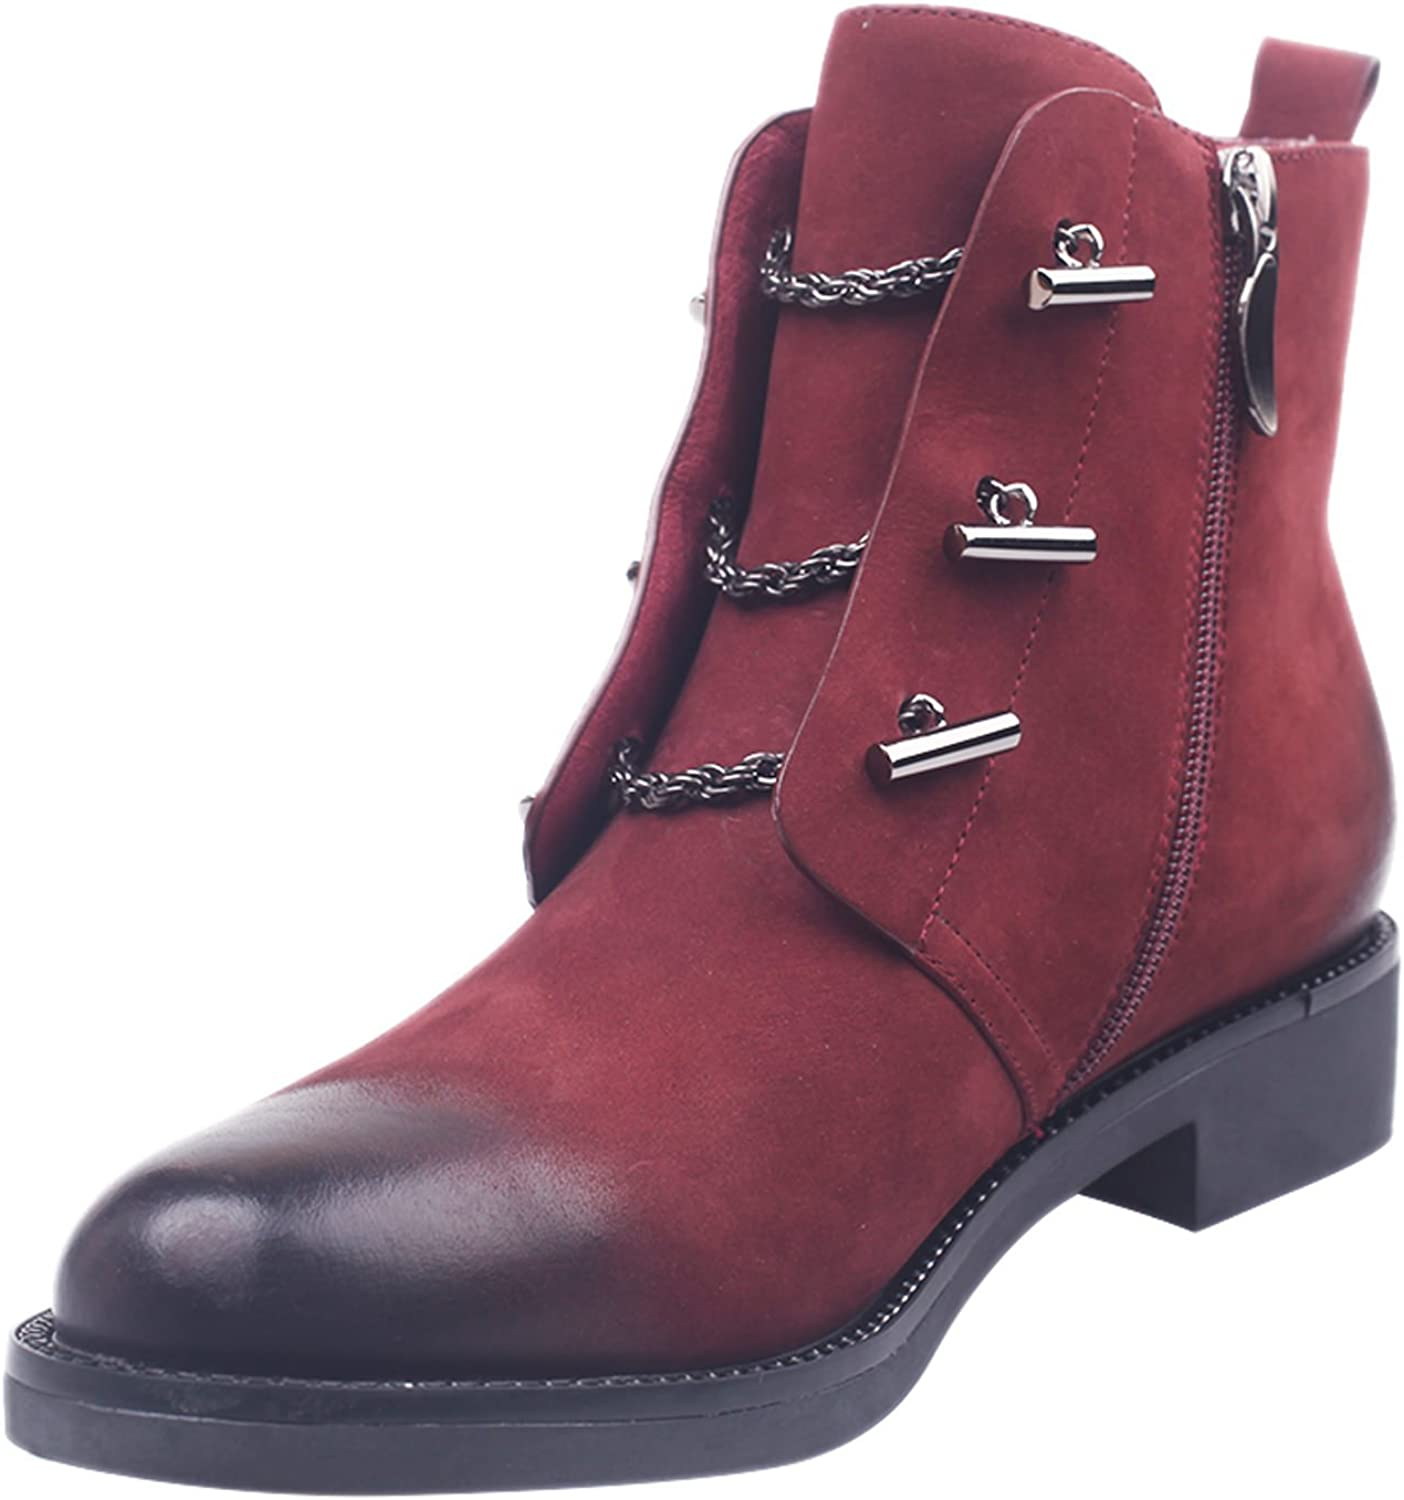 MARHEE Women's Ankle Boots Casual Leather Flat Side Zipper Martin Boots